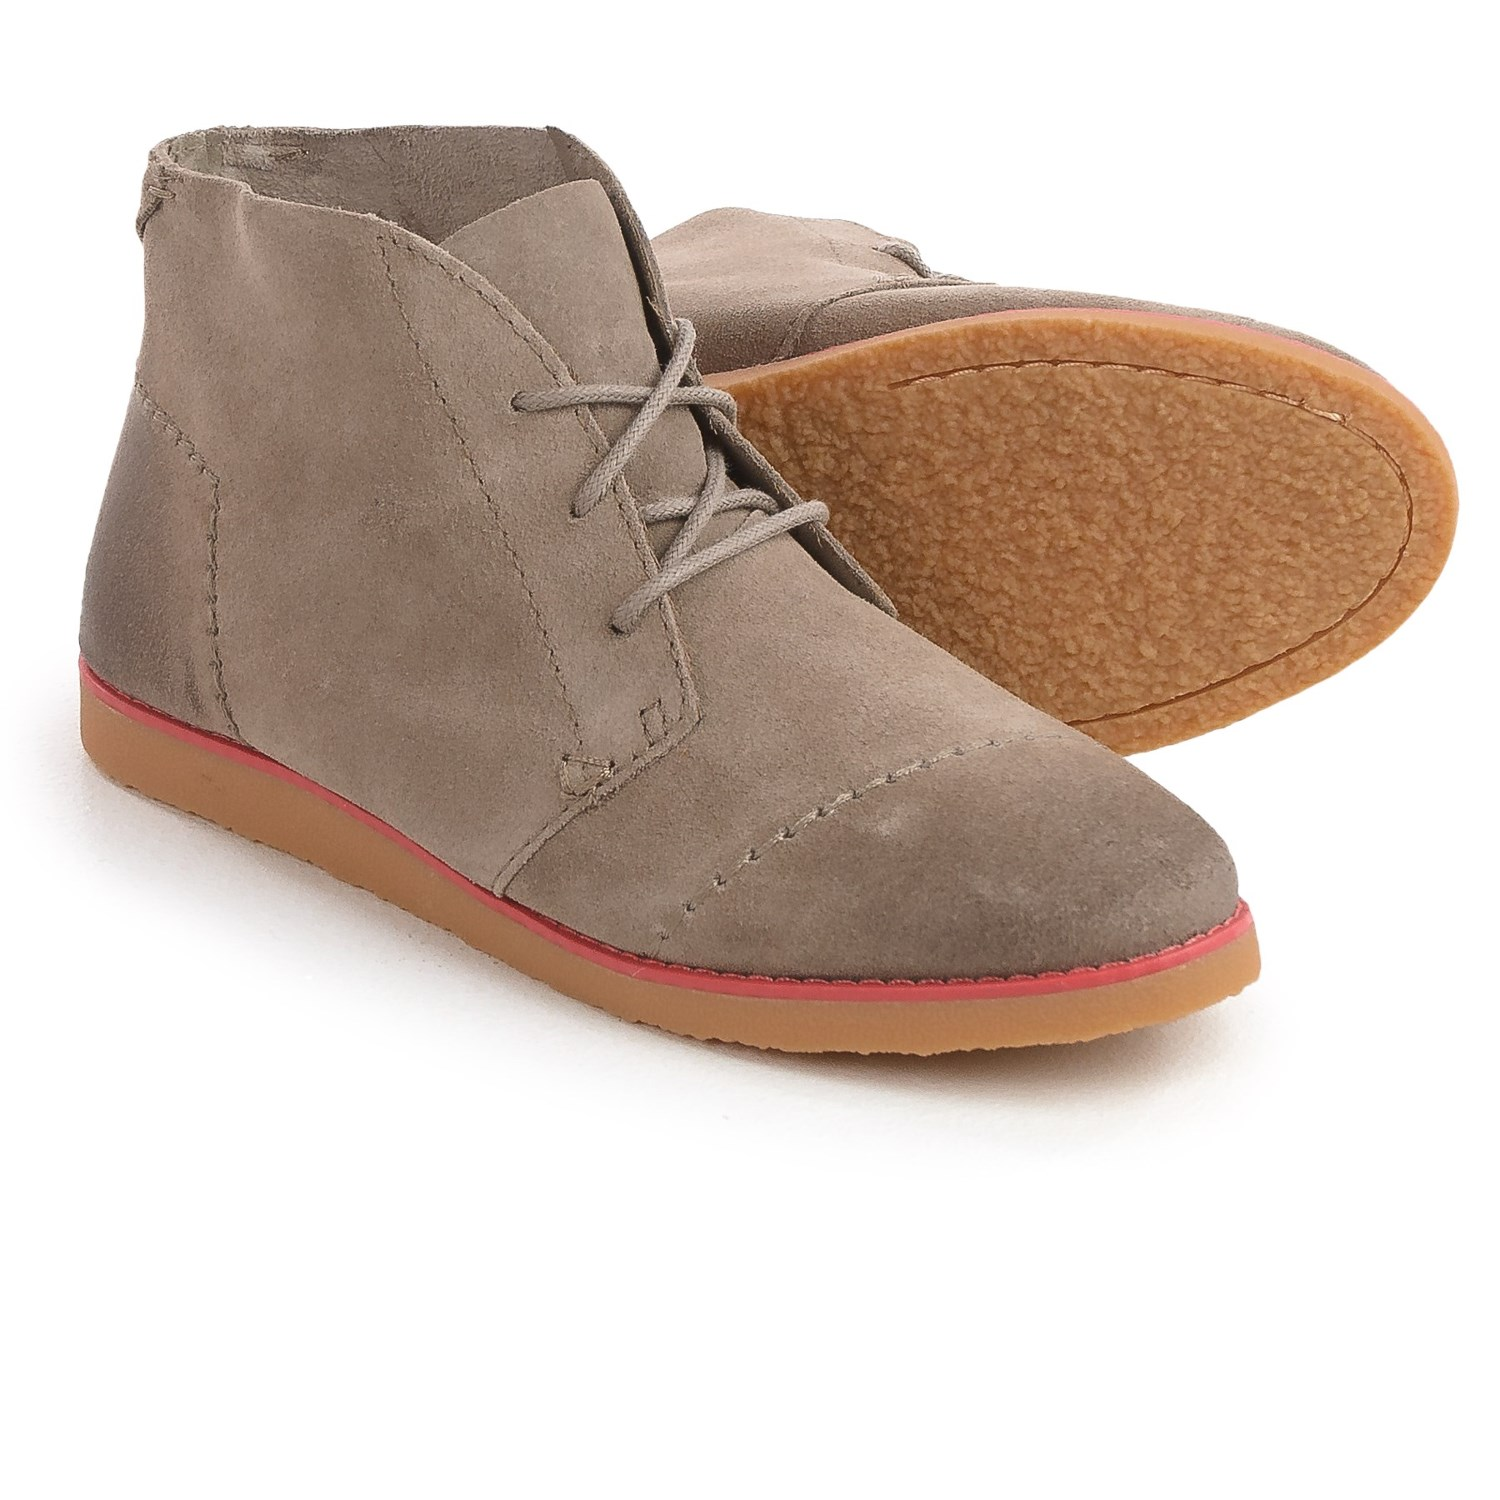 toms mateo chukka boots - suede (for women) in desert taupe aonhzrc